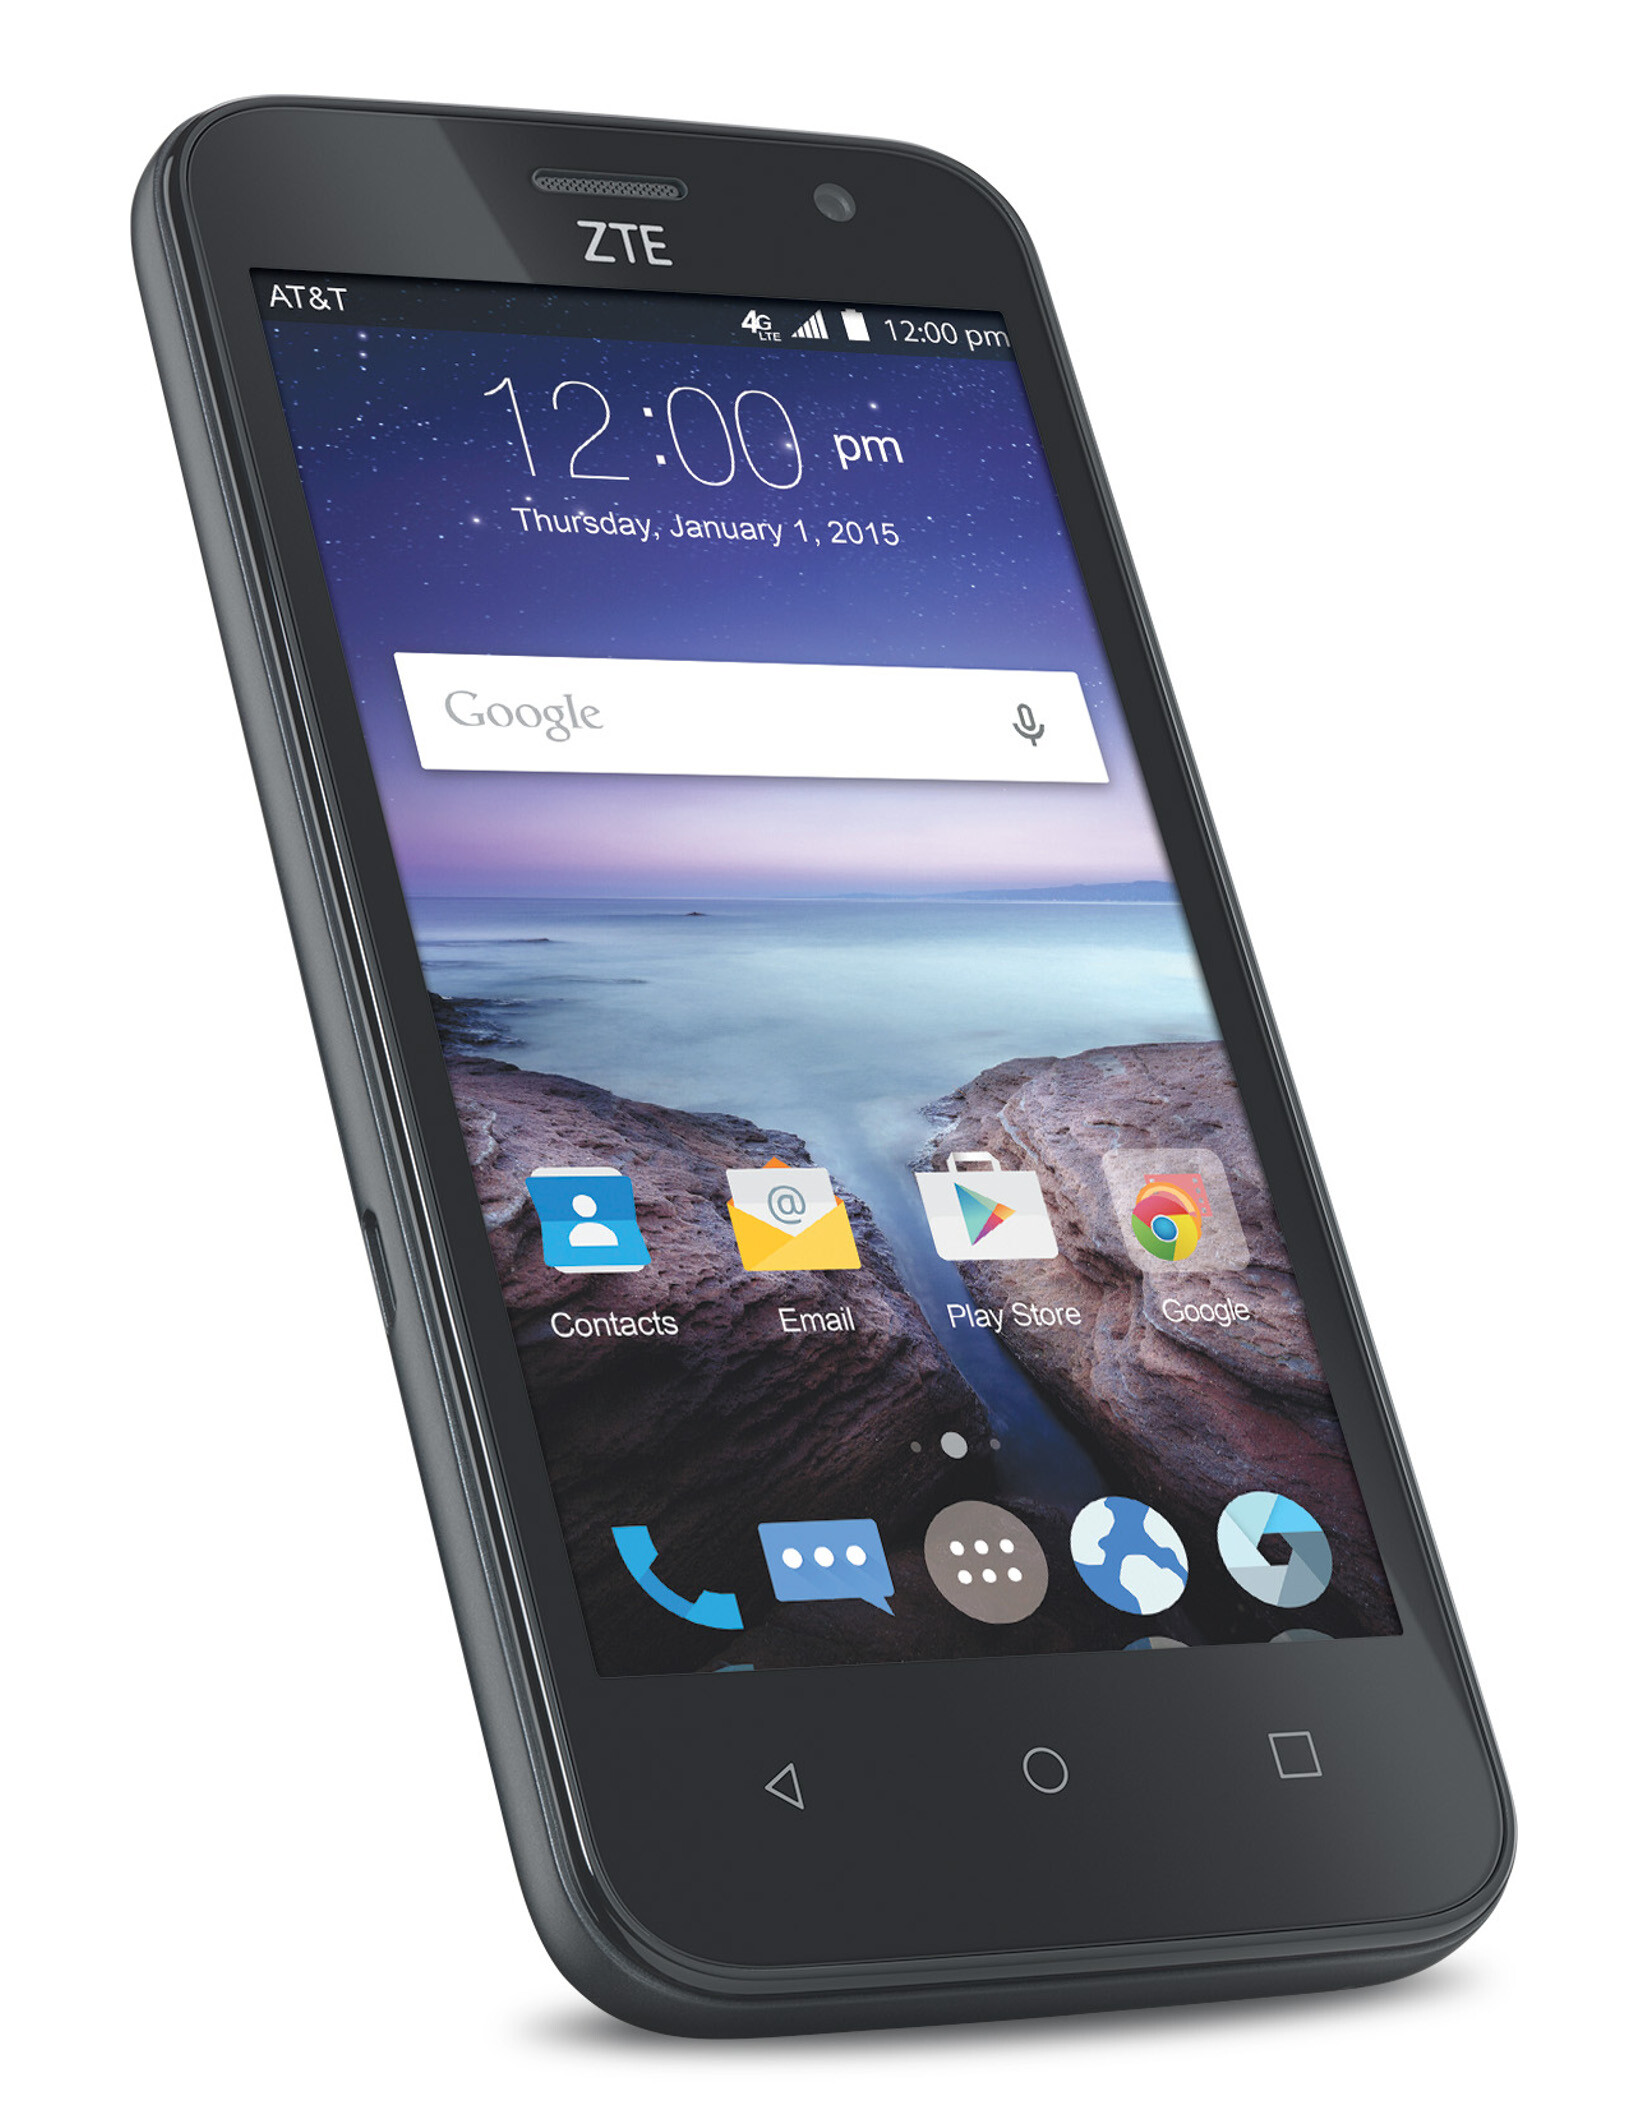 zte maven phone you have looked